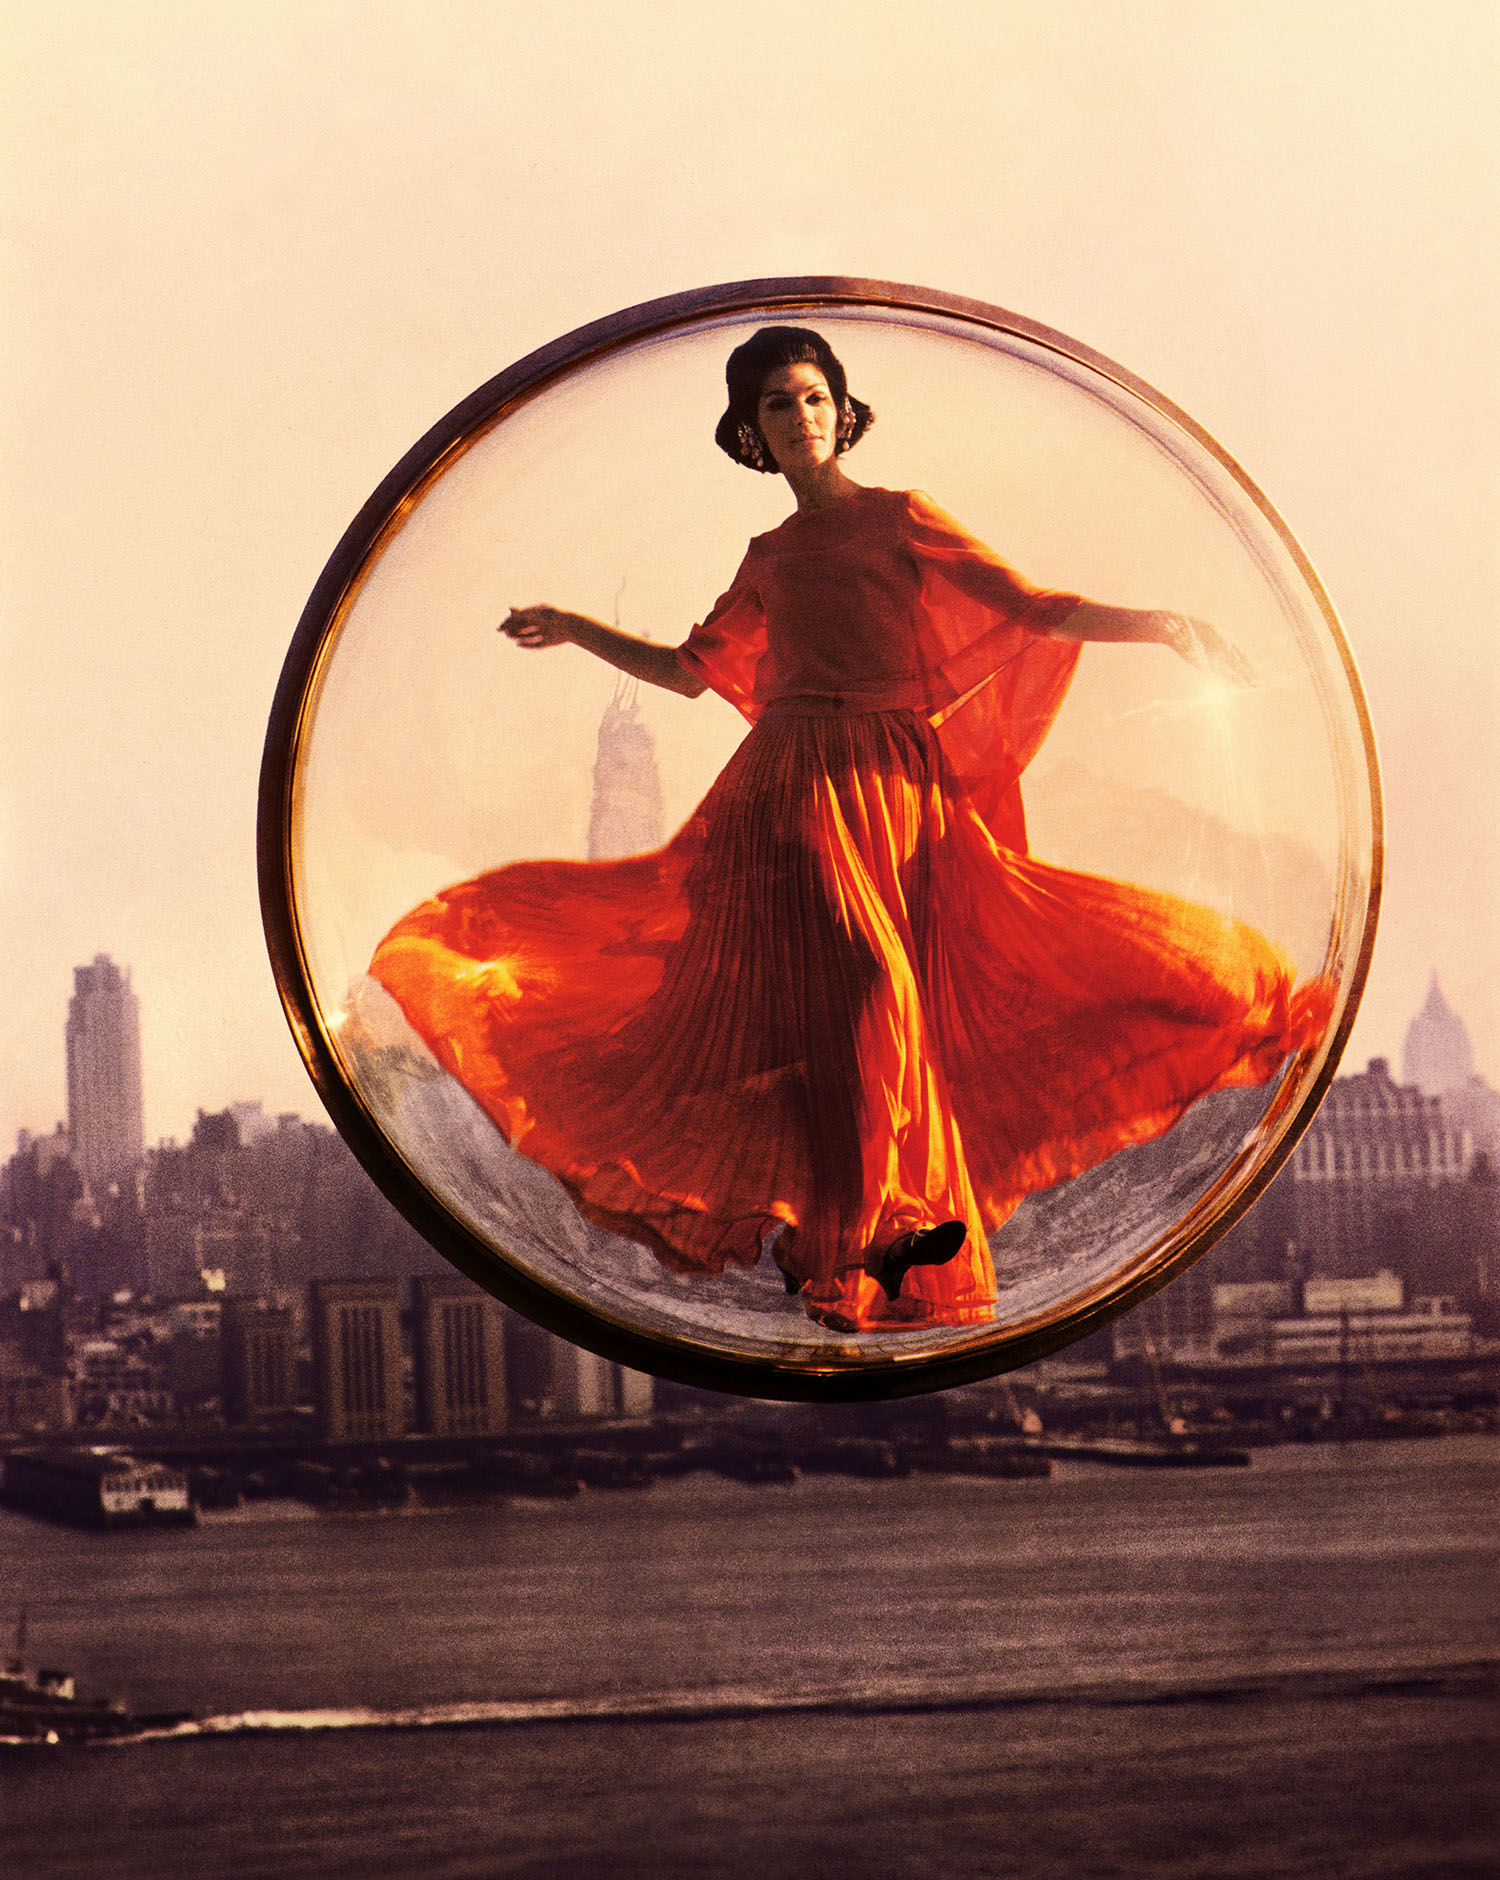 March 1963, photo by Melvin Sokolsky.